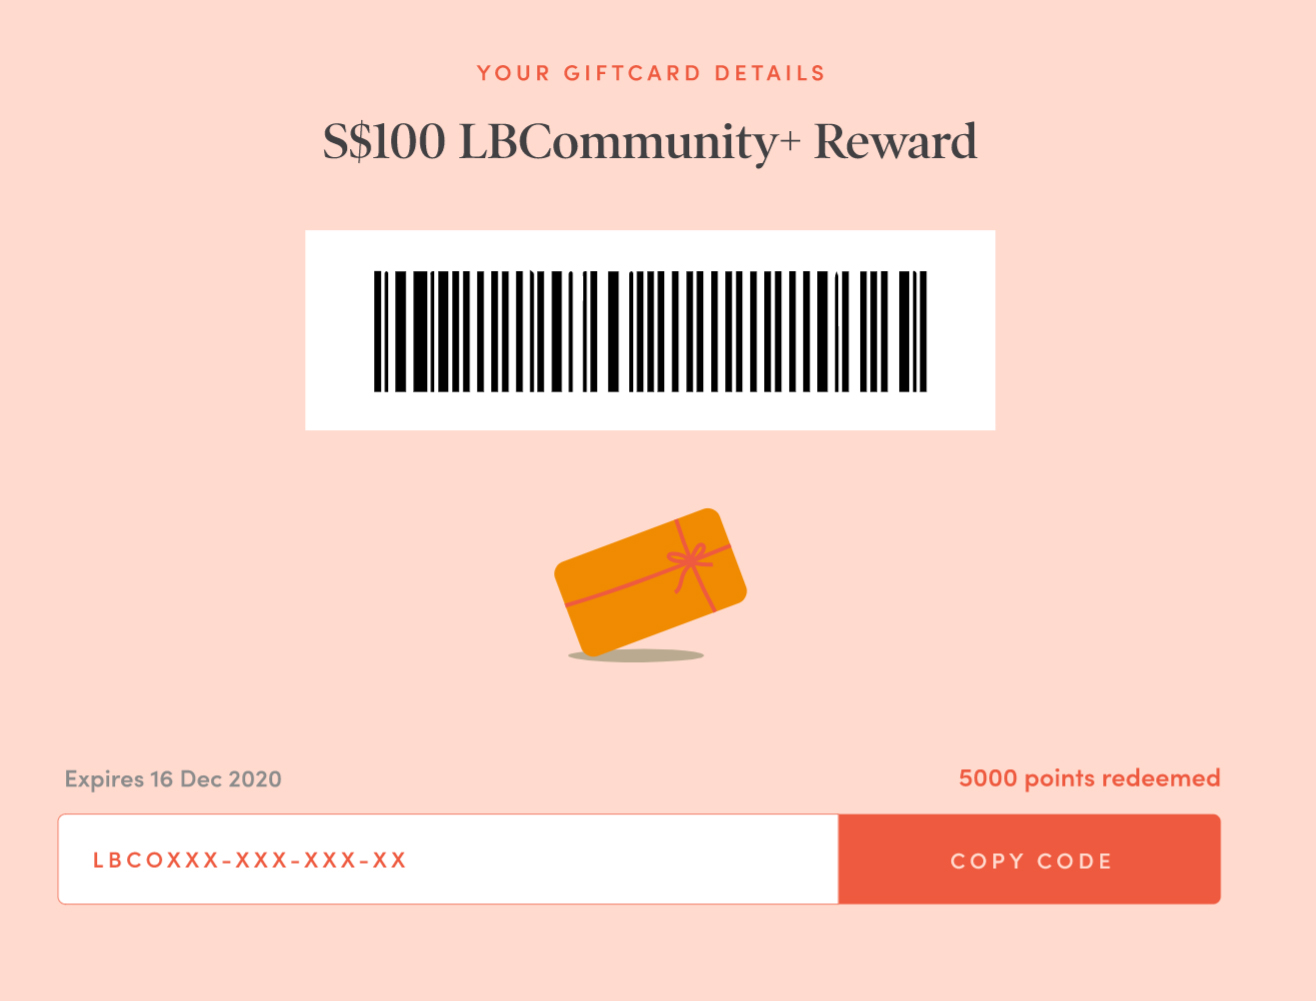 The gift card feature allows LBCommunity+ to reward members in a more convenient manner.